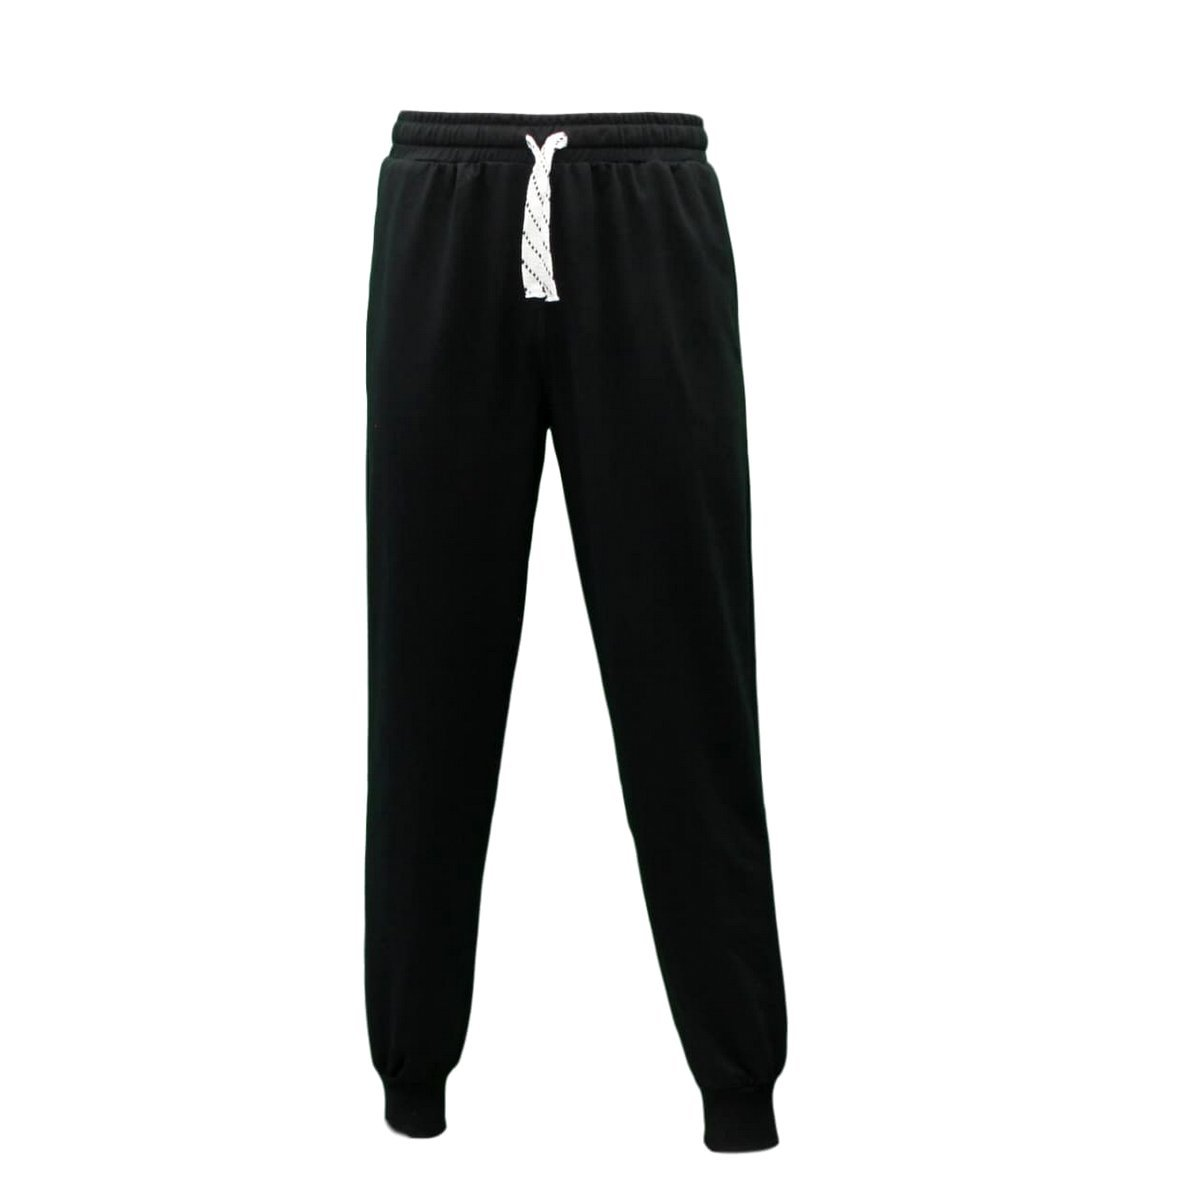 NEW-Men-039-s-Track-Pants-Slim-Cuff-Trackies-Trousers-Sport-Tracksuit-Casual-Plain thumbnail 5